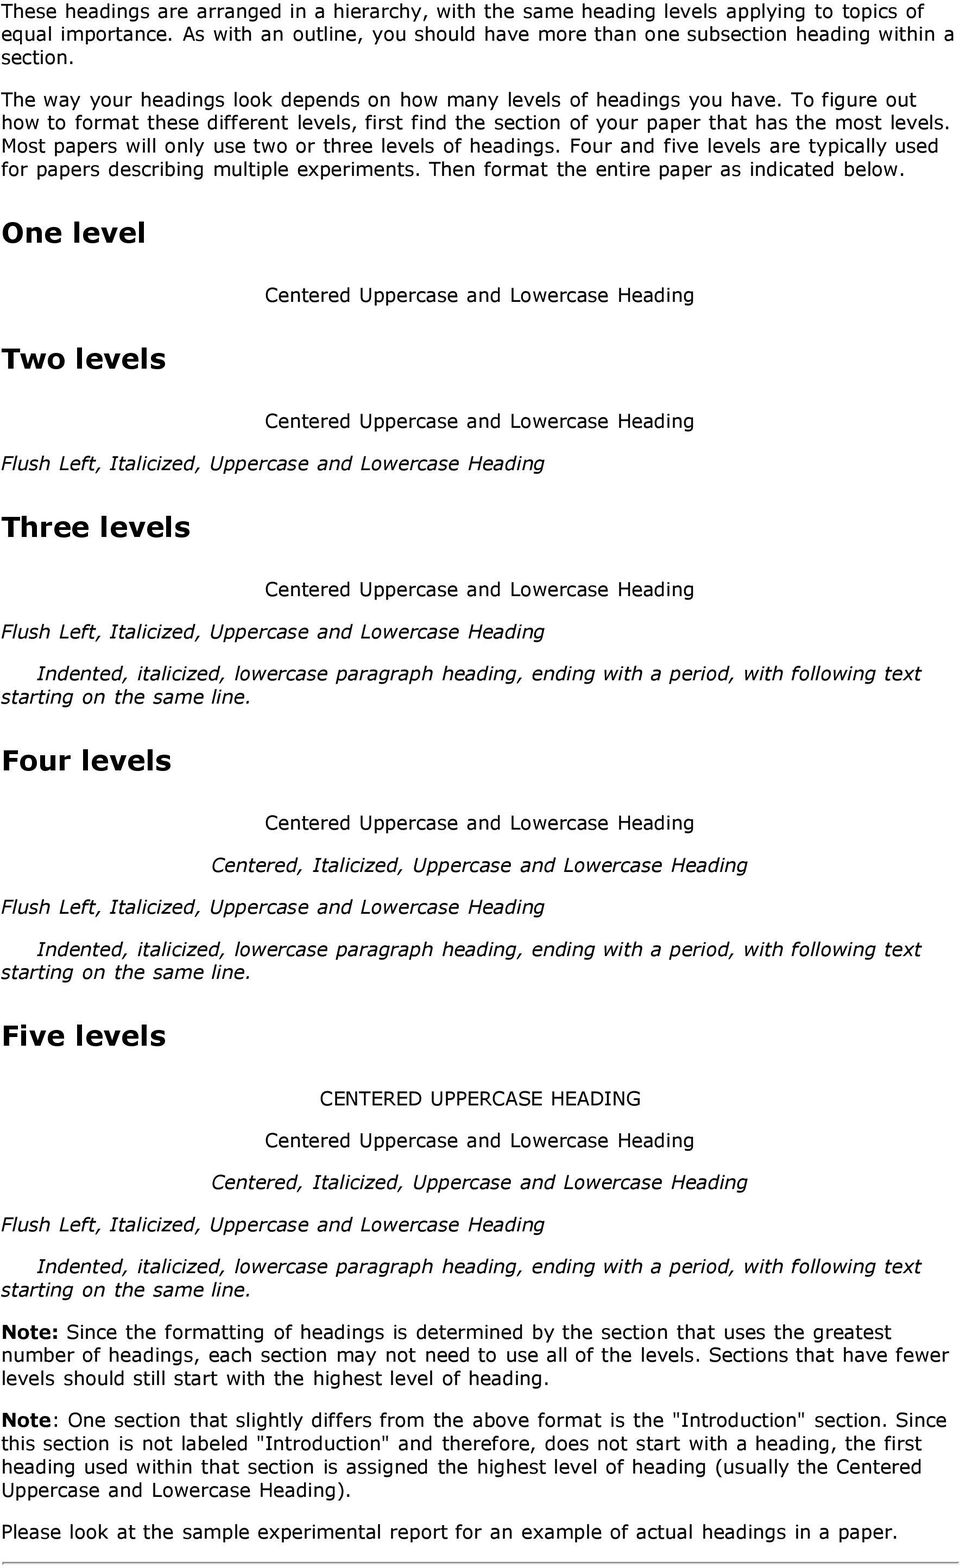 Most papers will only use two or three levels of headings. Four and five levels are typically used for papers describing multiple experiments. Then format the entire paper as indicated below.